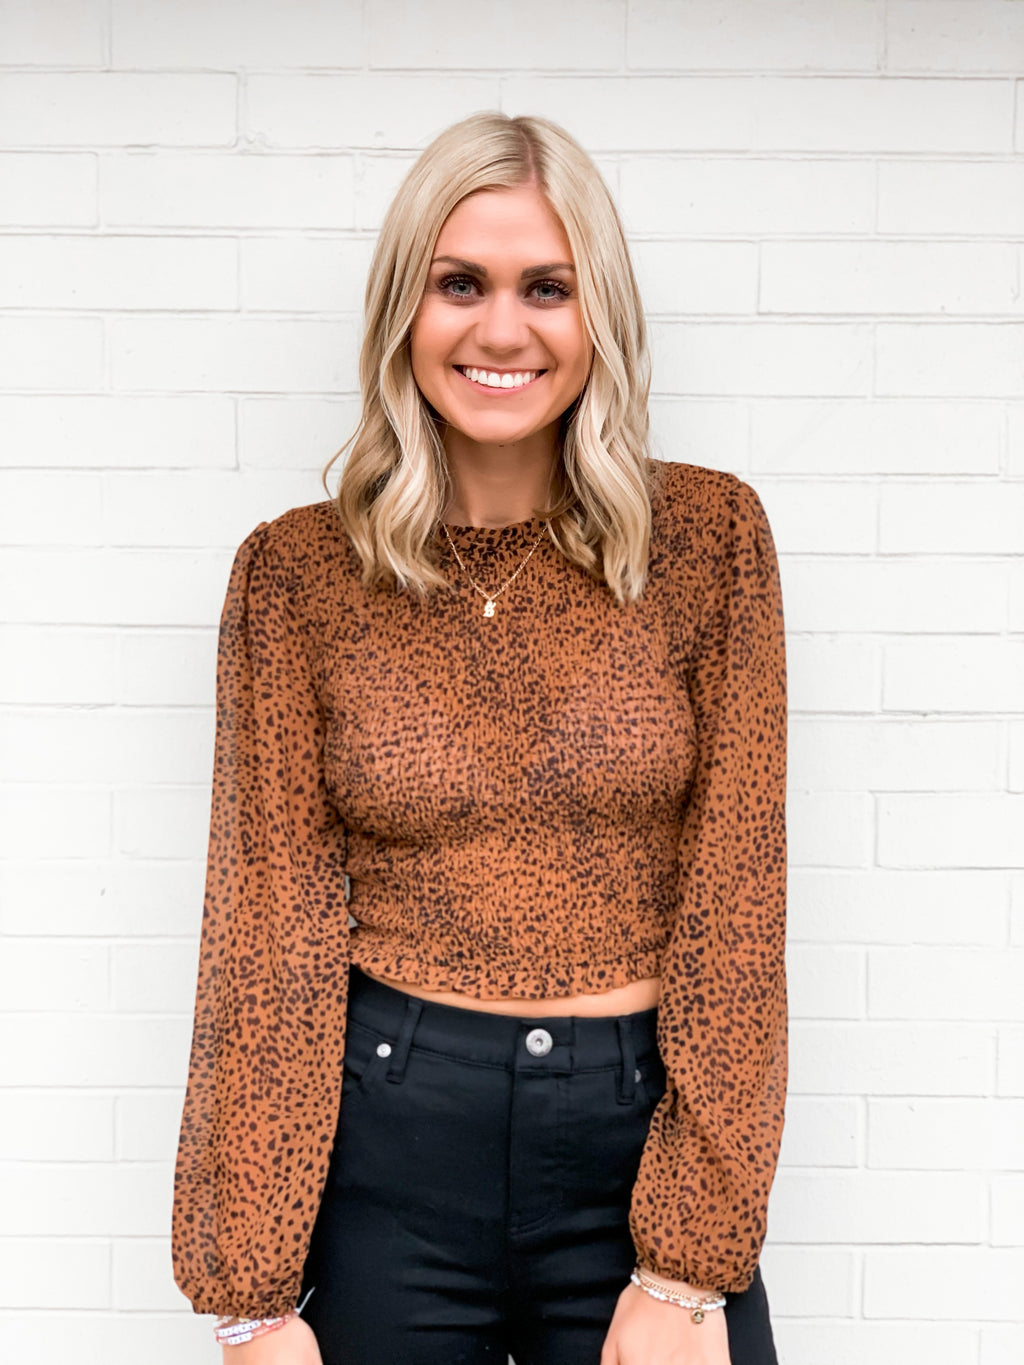 Napa Nights Cheetah Smocked Top